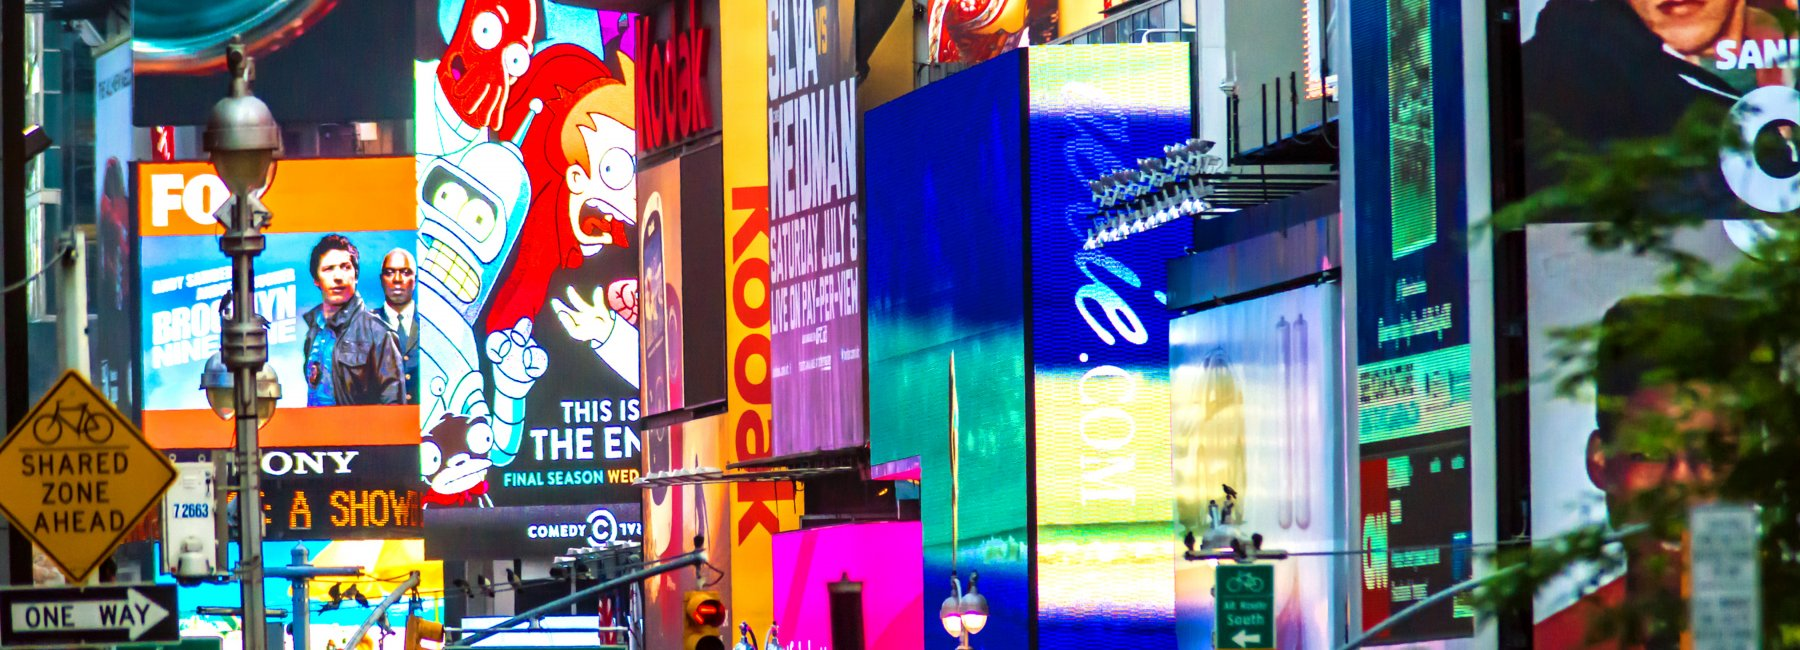 Times Square Is Great Illustrator of Marketing Overload